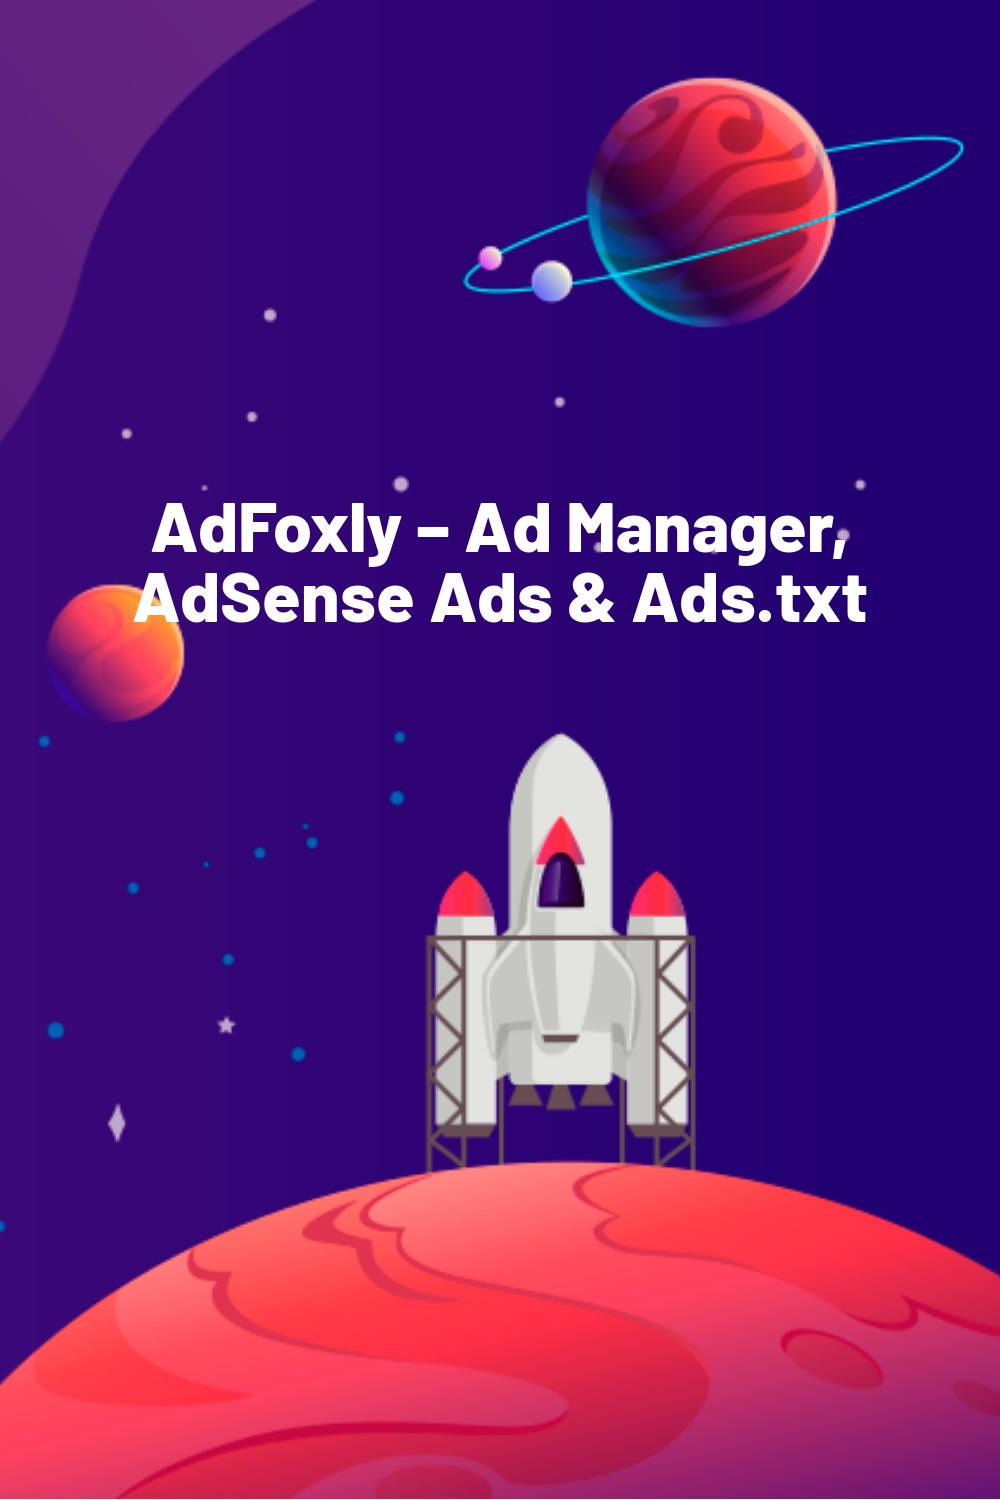 AdFoxly – Ad Manager, AdSense Ads & Ads.txt